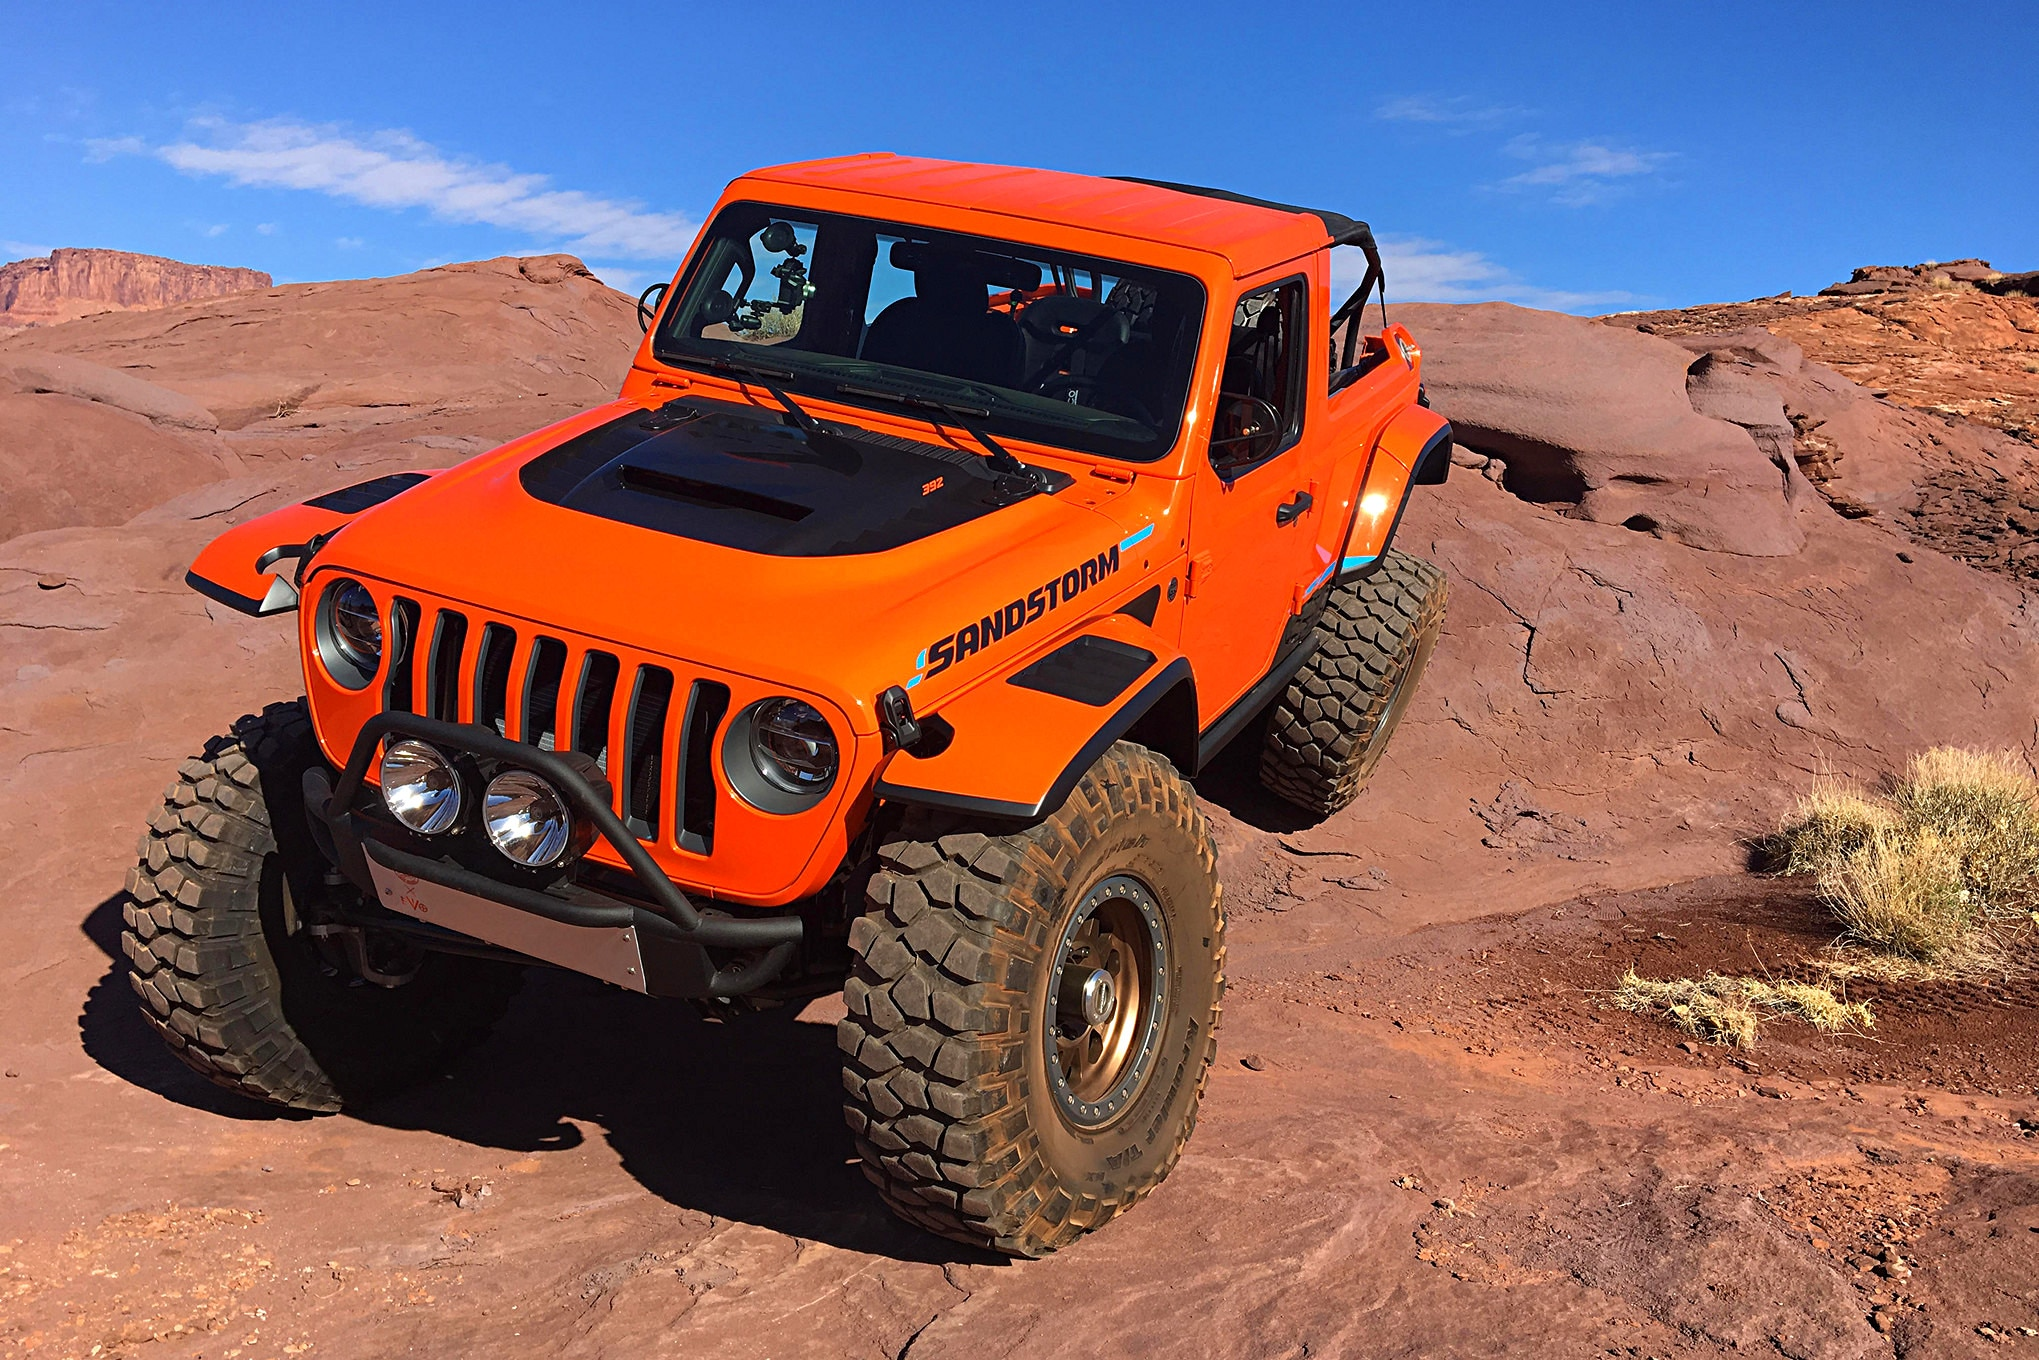 Jeep Concept Moab Sandstorm.JPG Photo 165480388